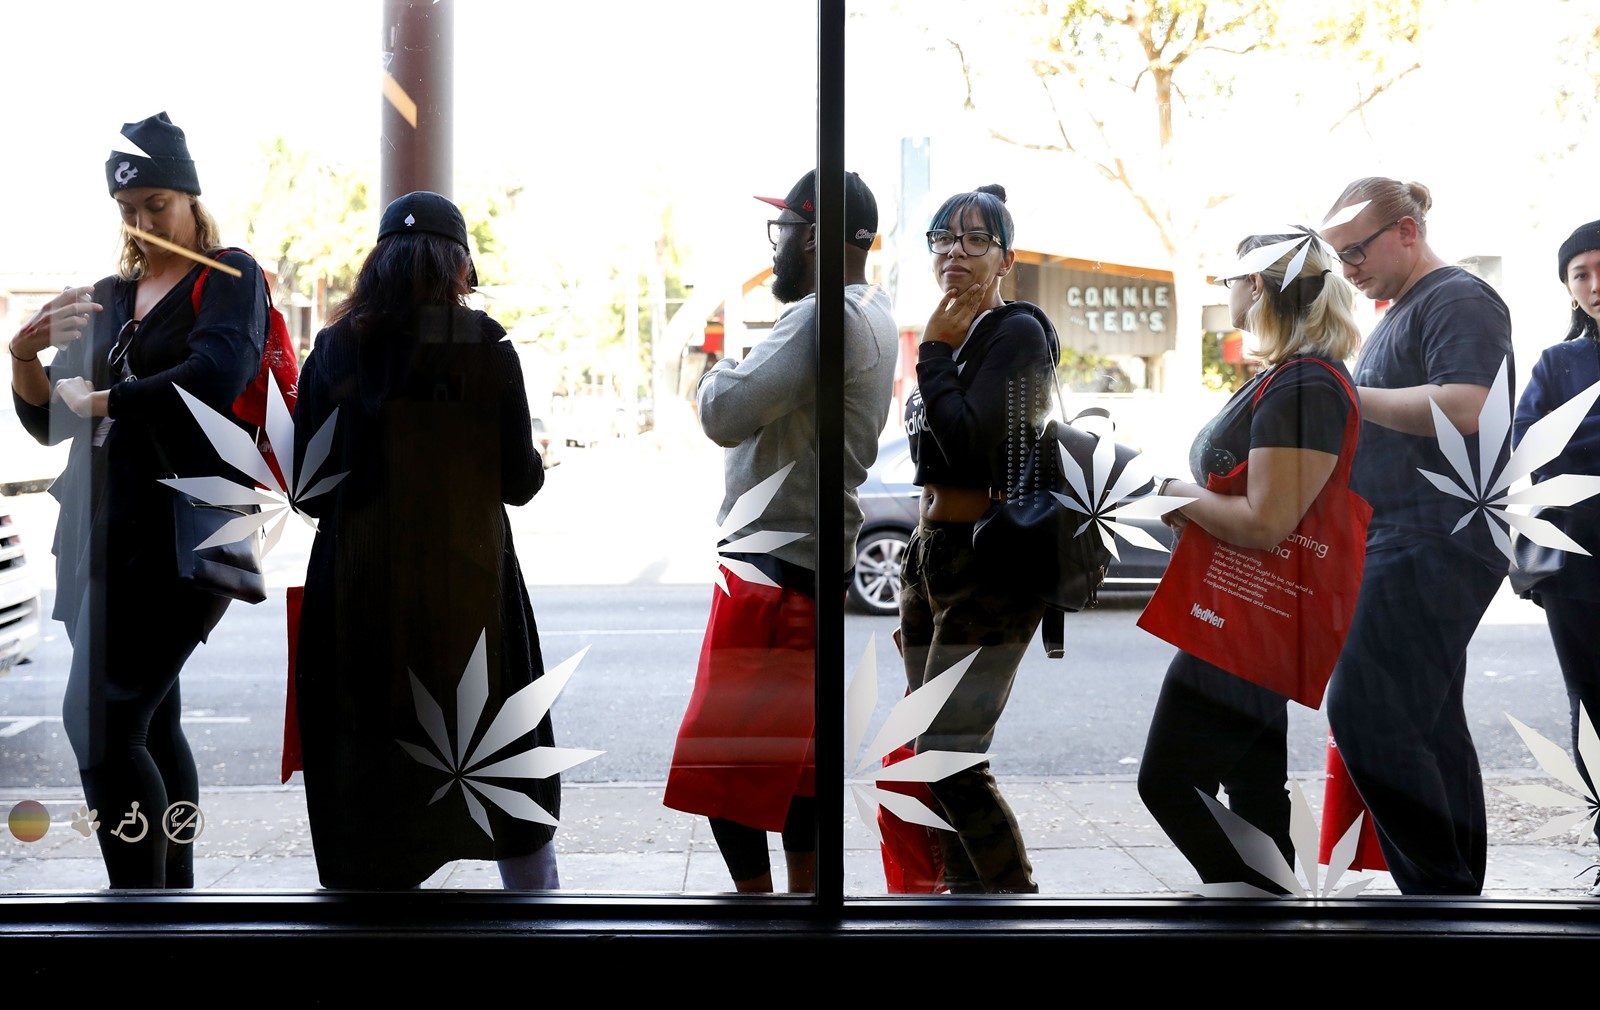 The reversal of a U.S. policy allowing leeway for state-sanctioned sales of marijuana could push banks to rethink their plans. Above, a line at MedMen dispensary in West Hollywood. — Photograph: Christina House/Los Angeles Times.